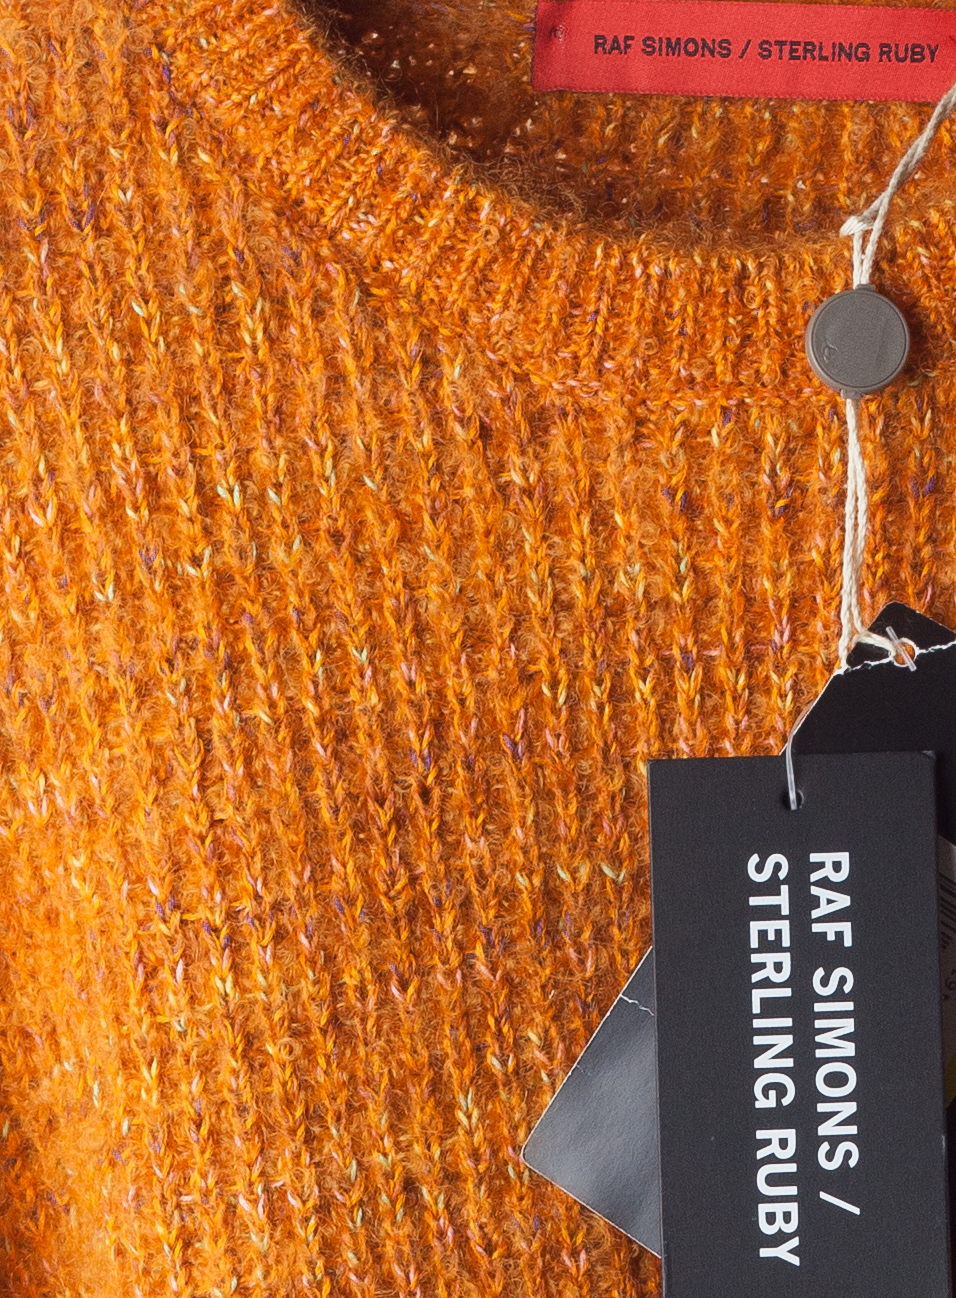 NWT Raf Simons x Sterling Ruby Knit Sweater